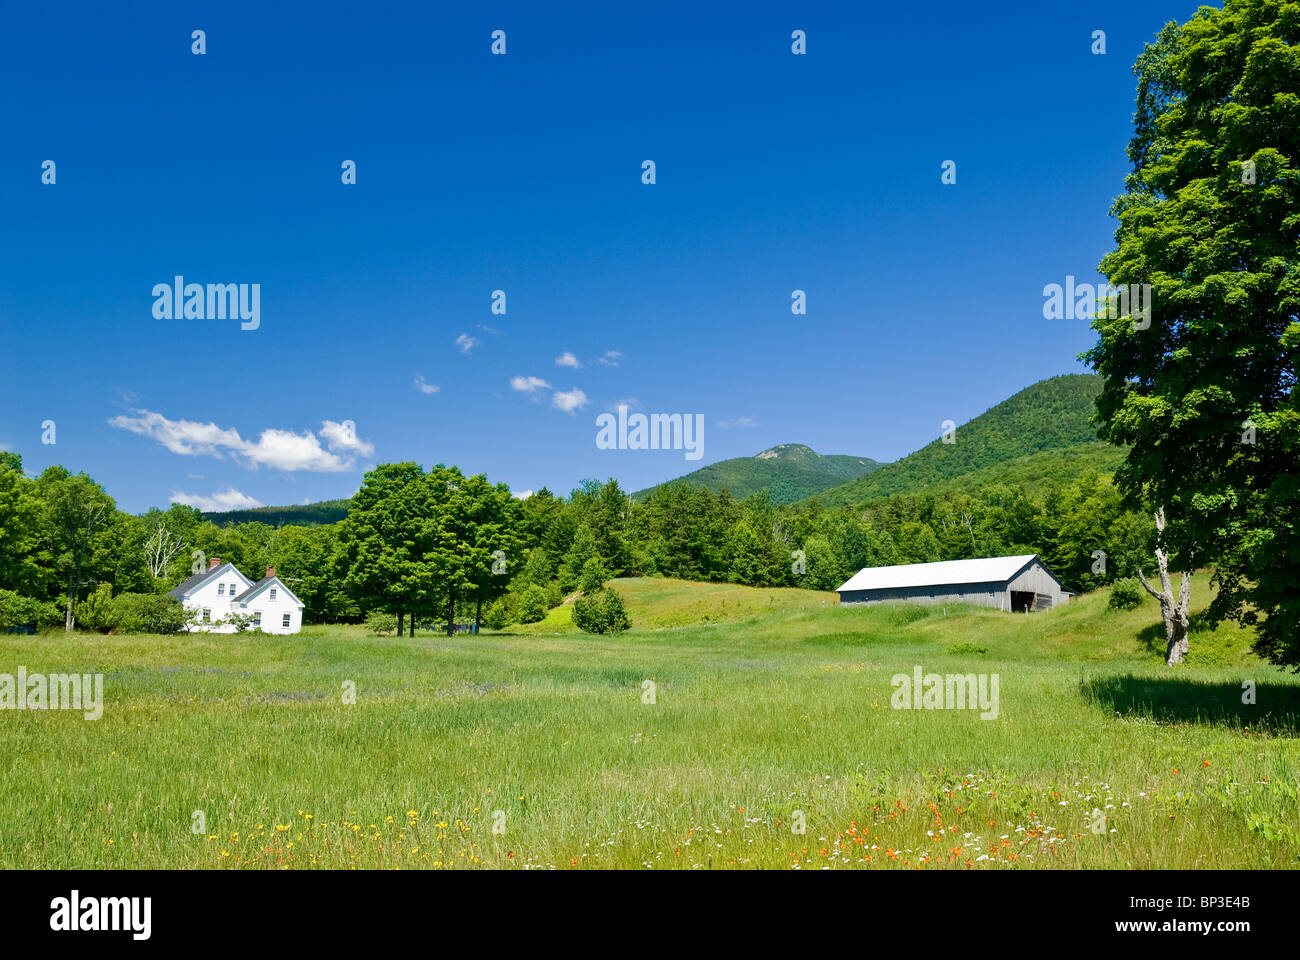 Rural Landscape with green meadow, New Hampshire, USA. - Stock Image